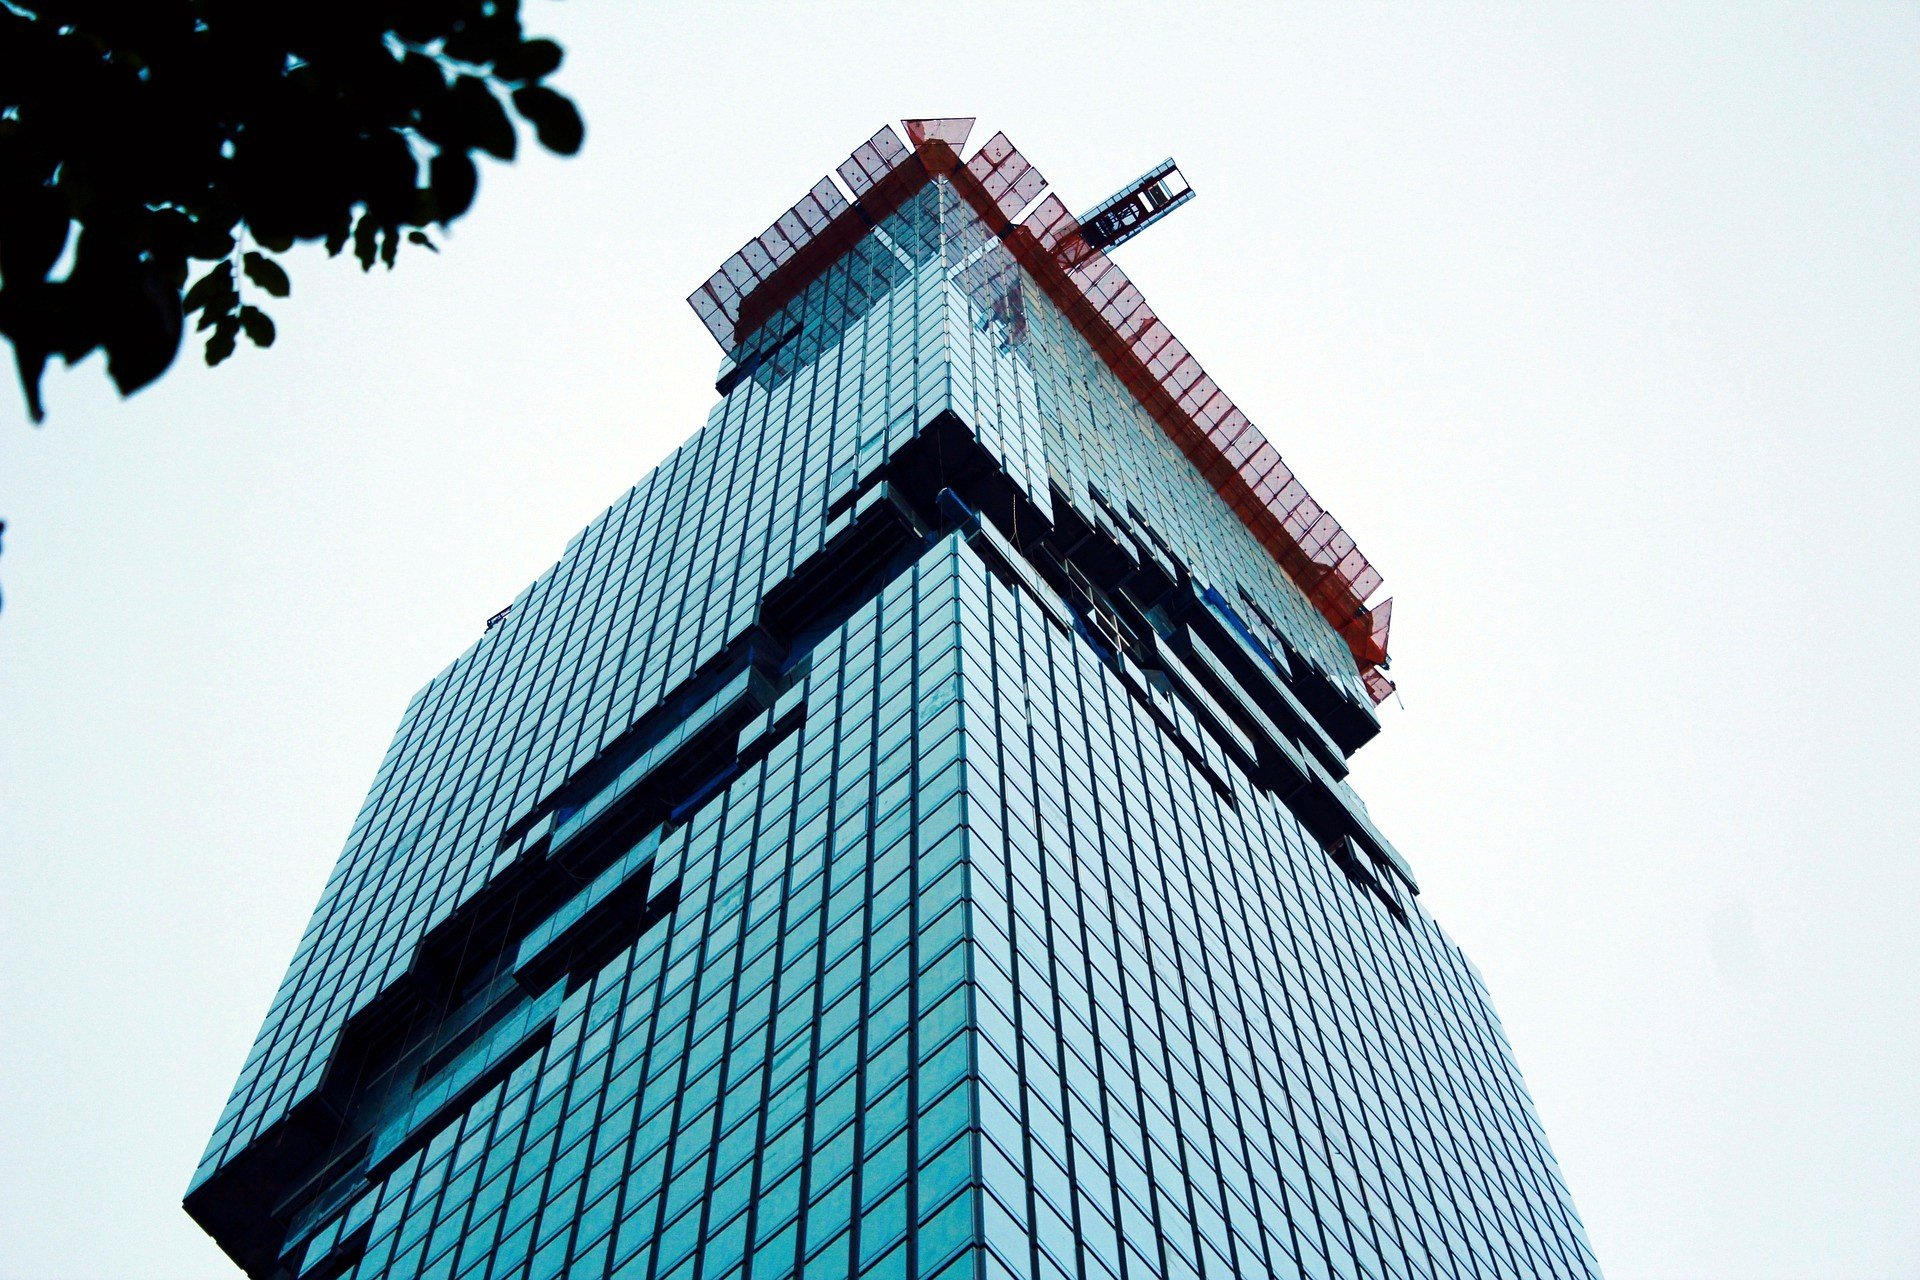 King Power MahaNakhon in Bangkok